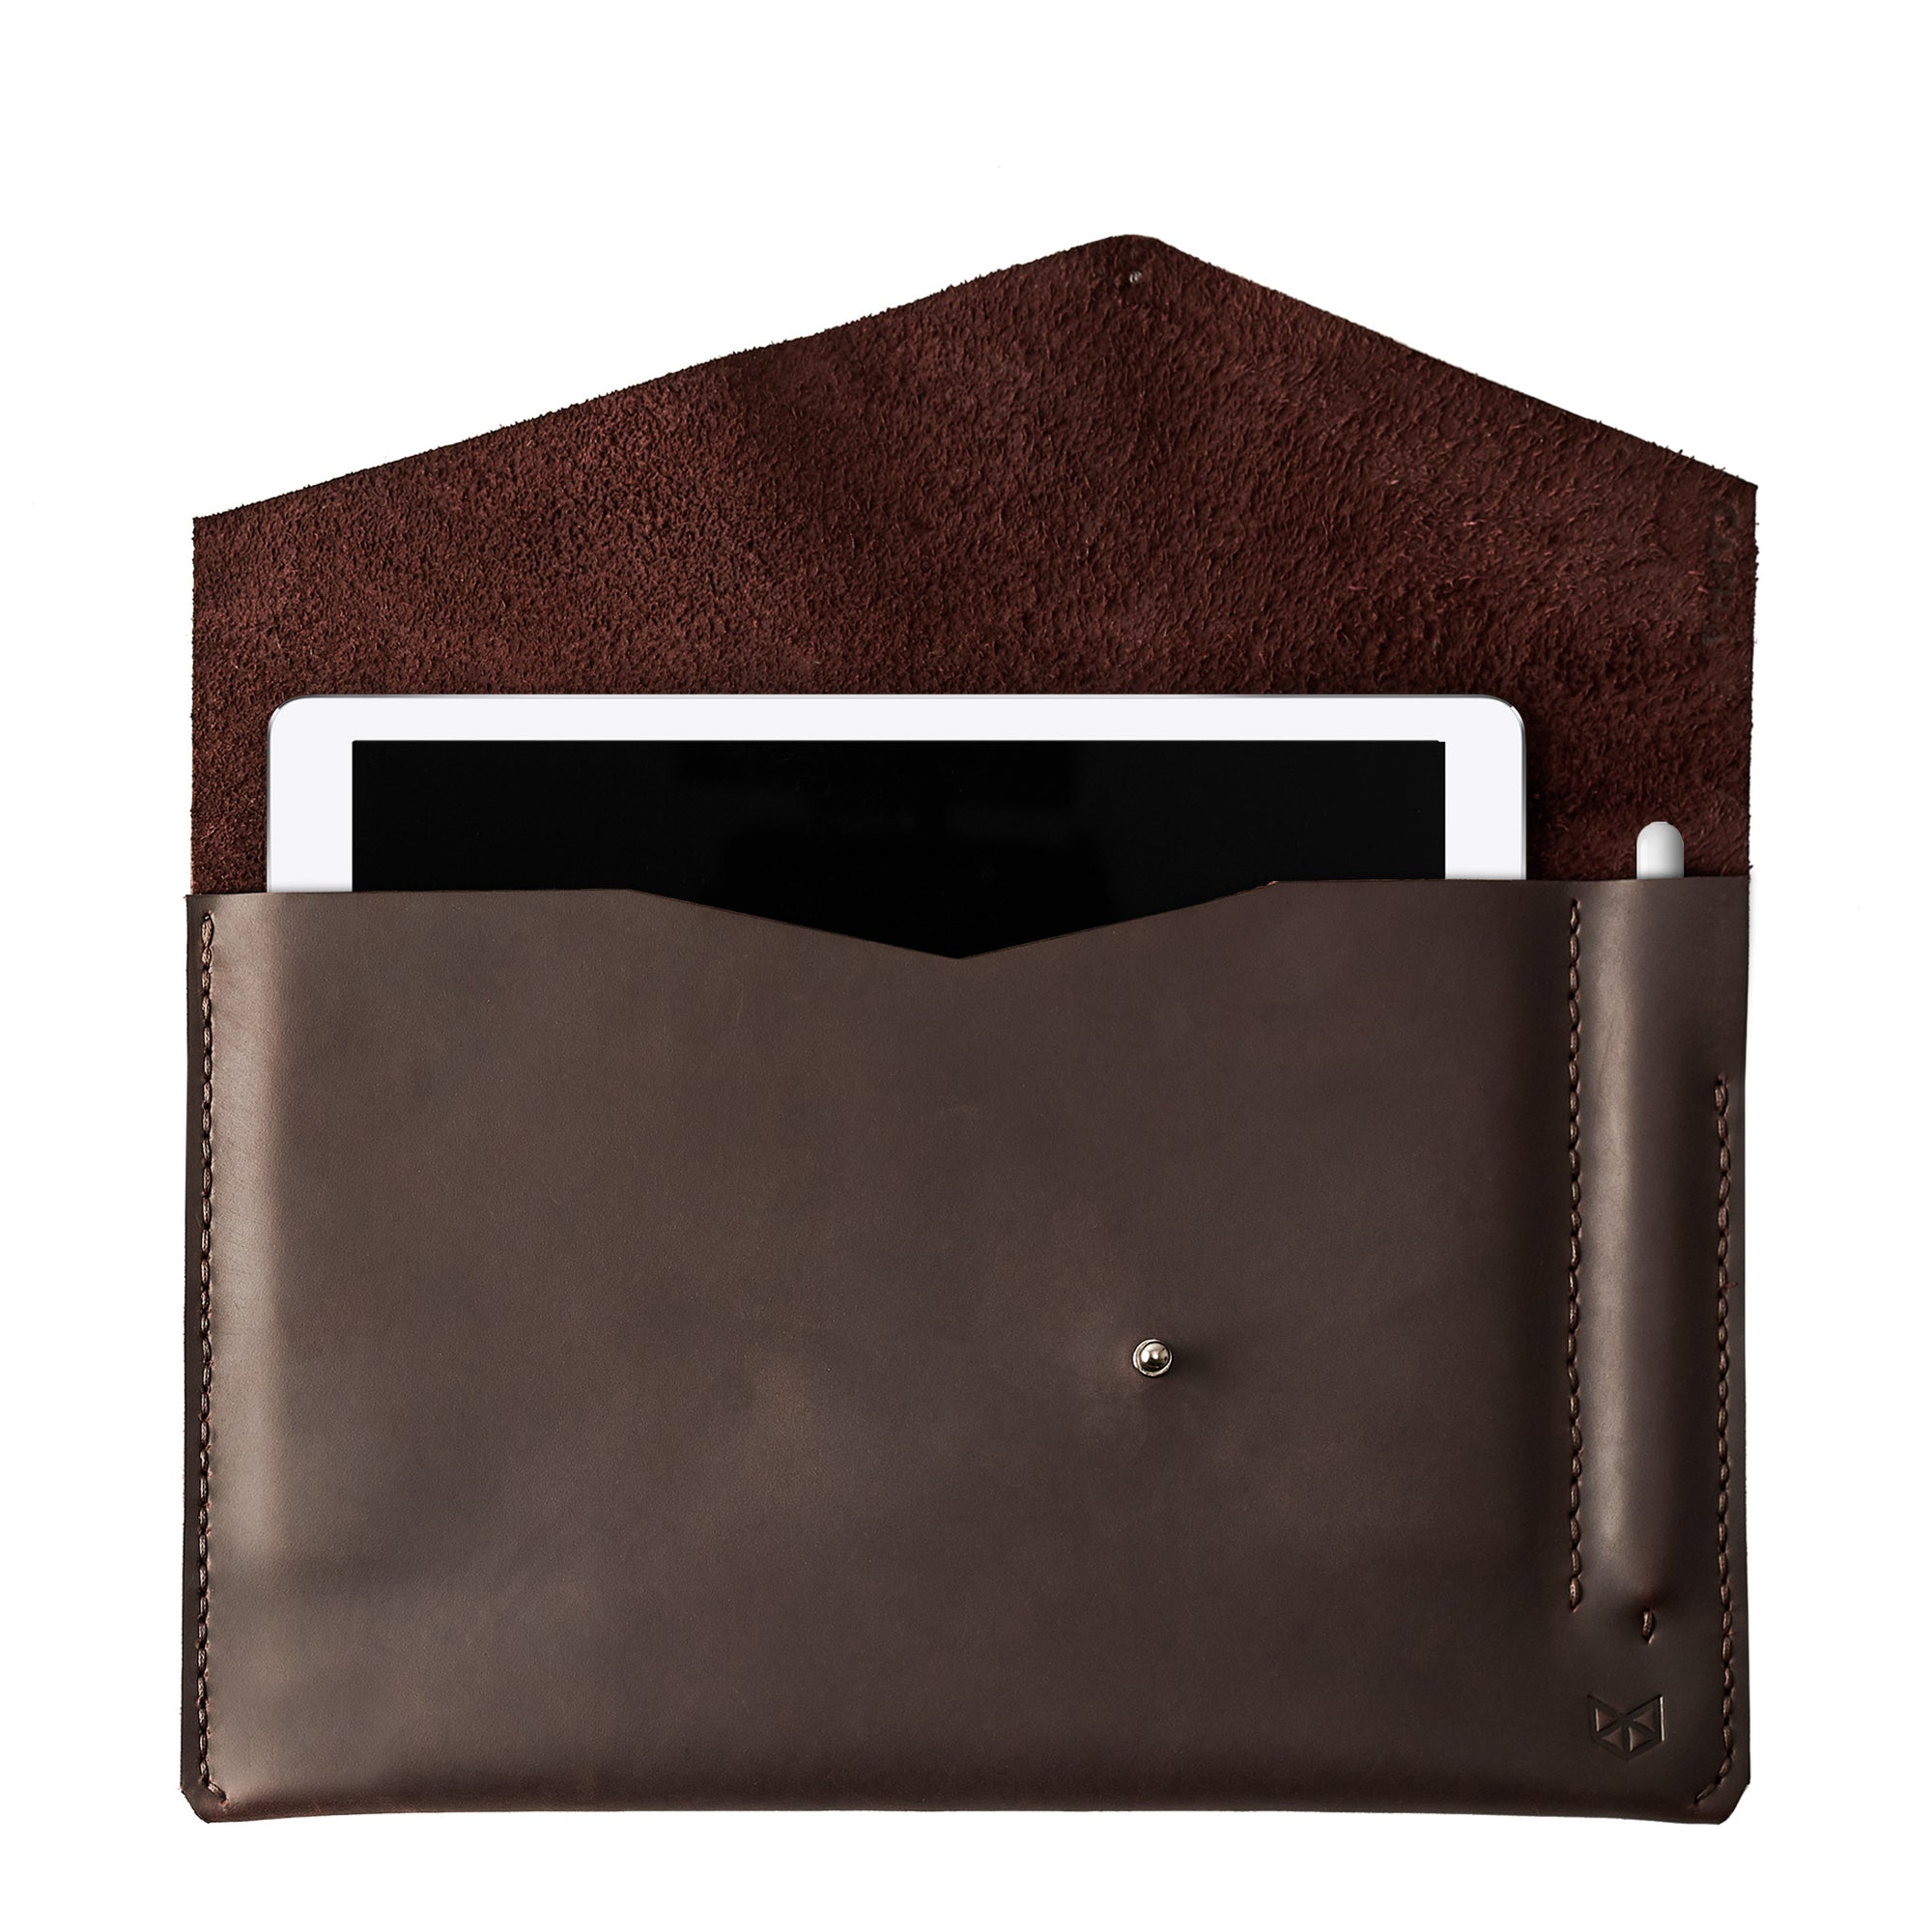 Dark brown leather sleeve for iPad pro 10.5 inch 12.9 inch. Mens gifts